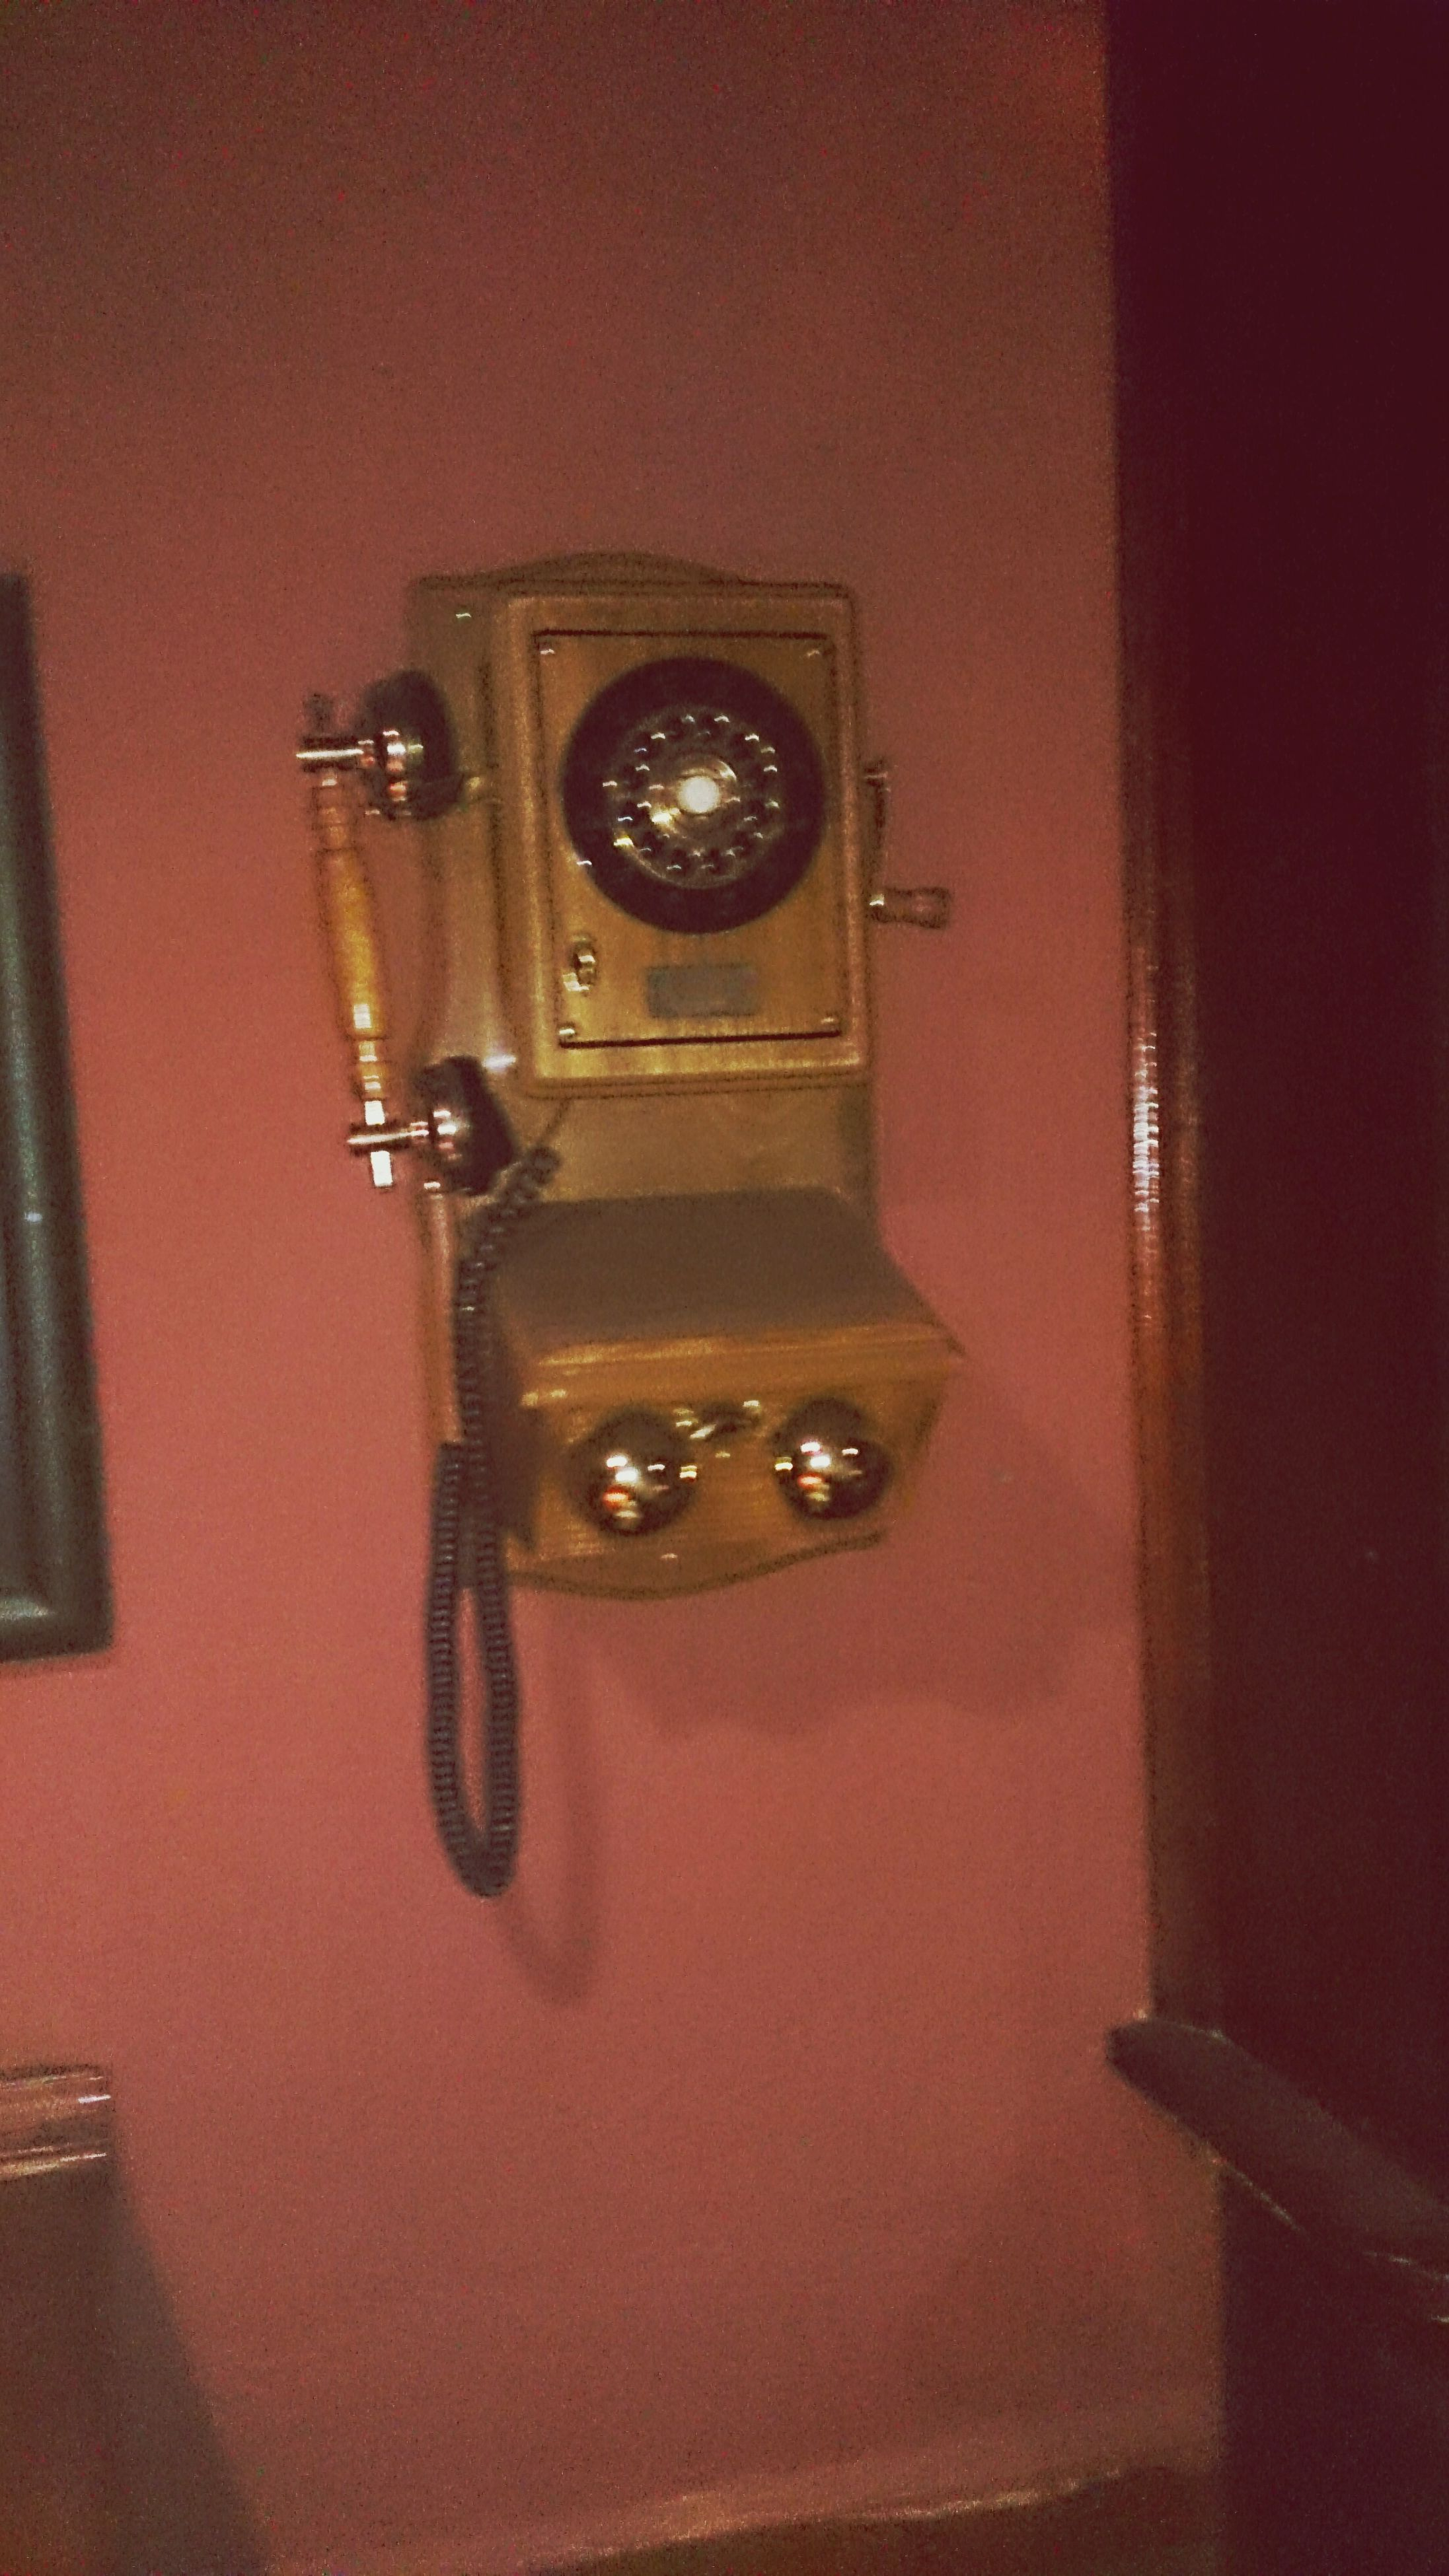 indoors, close-up, door, old-fashioned, technology, retro styled, wall - building feature, metal, time, old, no people, antique, single object, number, clock, security, telephone, wood - material, still life, doorknob